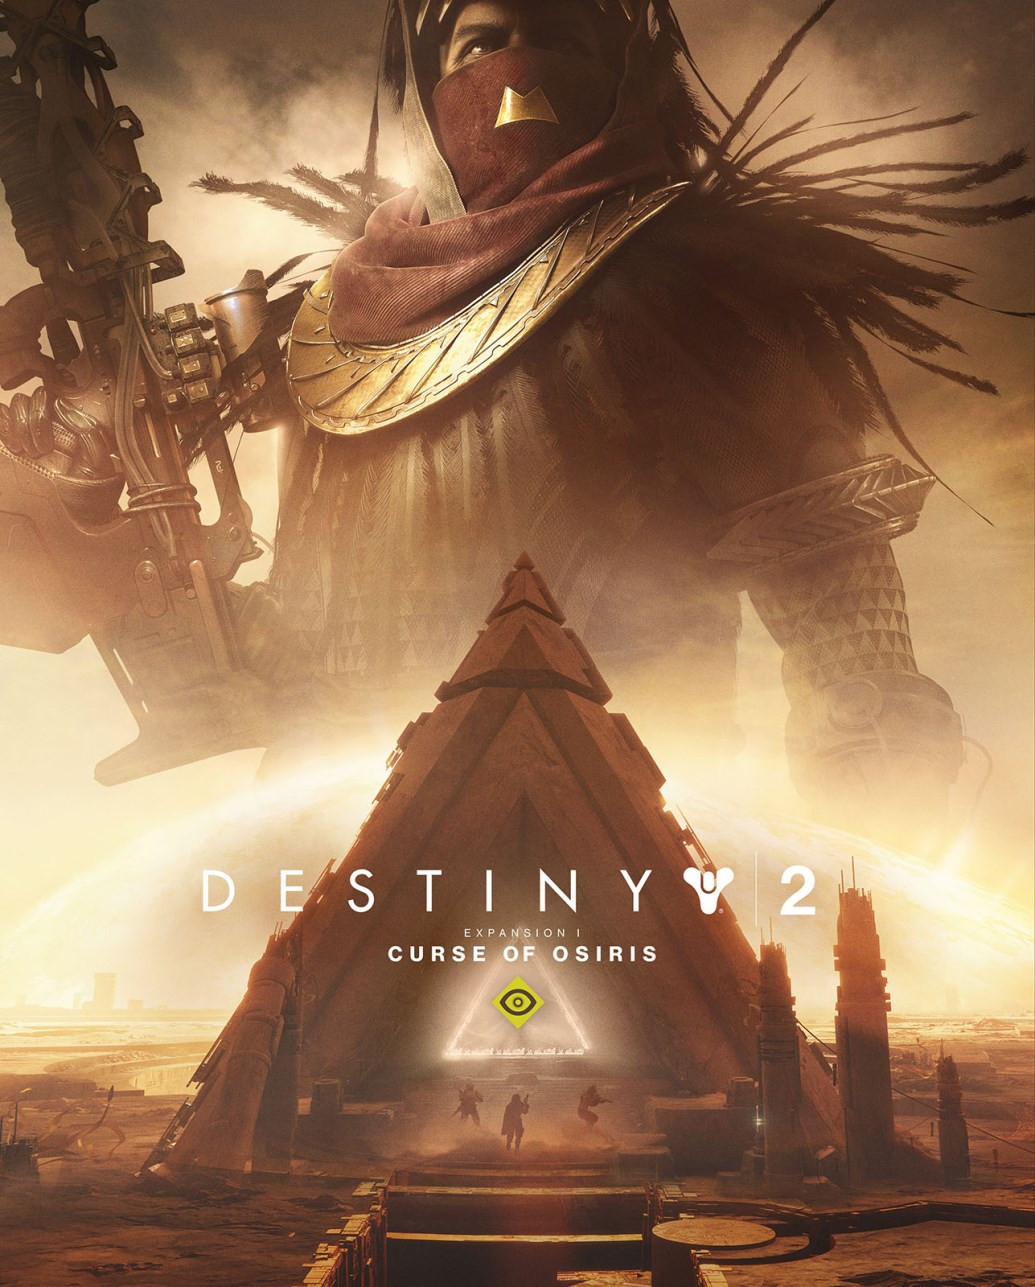 Destiny-2-Curse-of-Osiris-Cover-Art.jpg